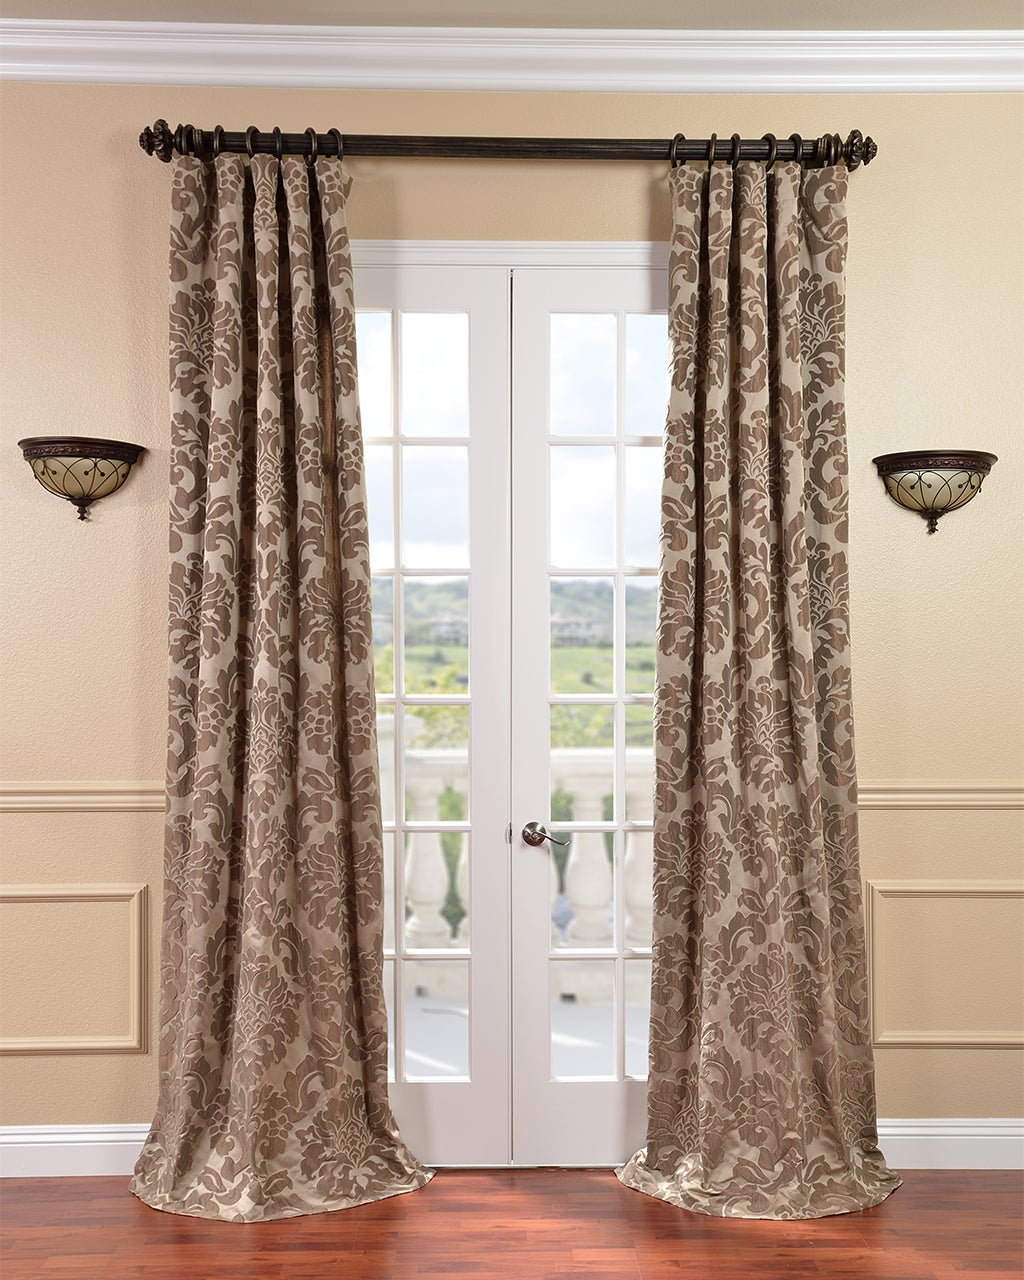 EFF Astoria Faux Silk Taupe/ Mushroom Jacquard Curtains